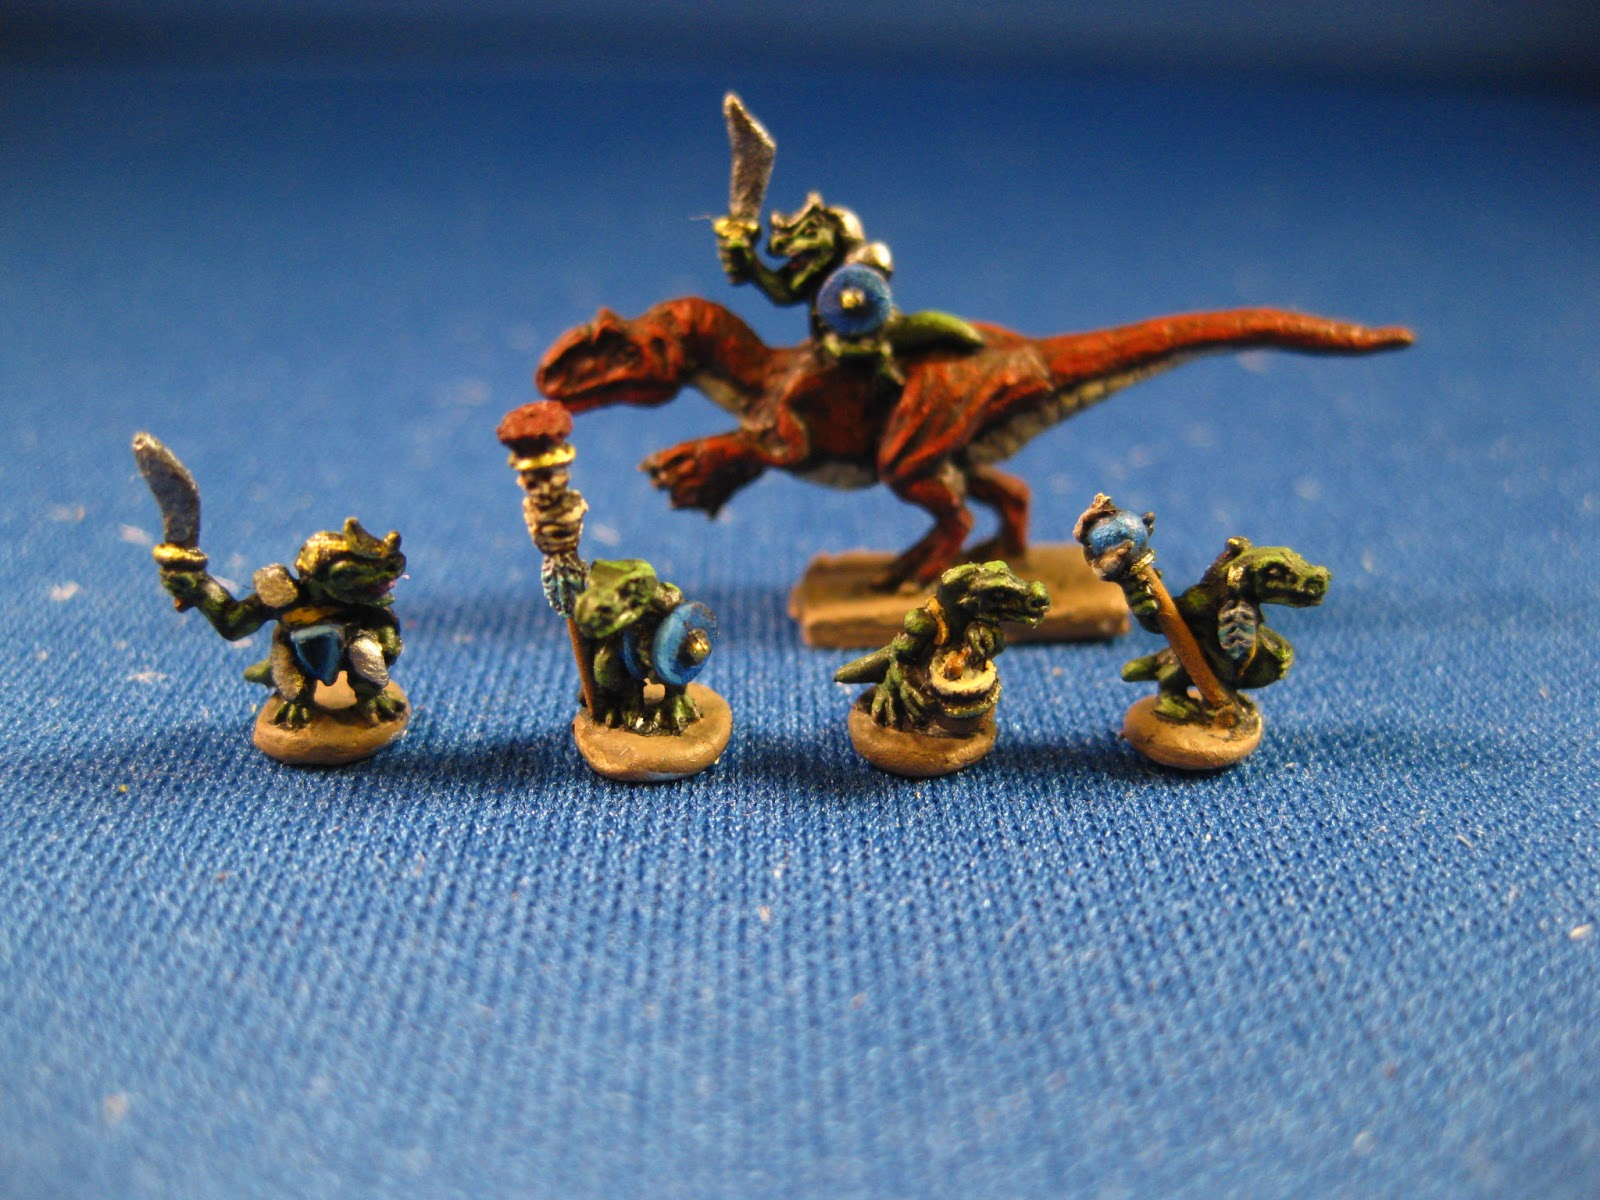 Microworld Unleash A Horde Of Tiny Lizardmen – OnTableTop – Home of